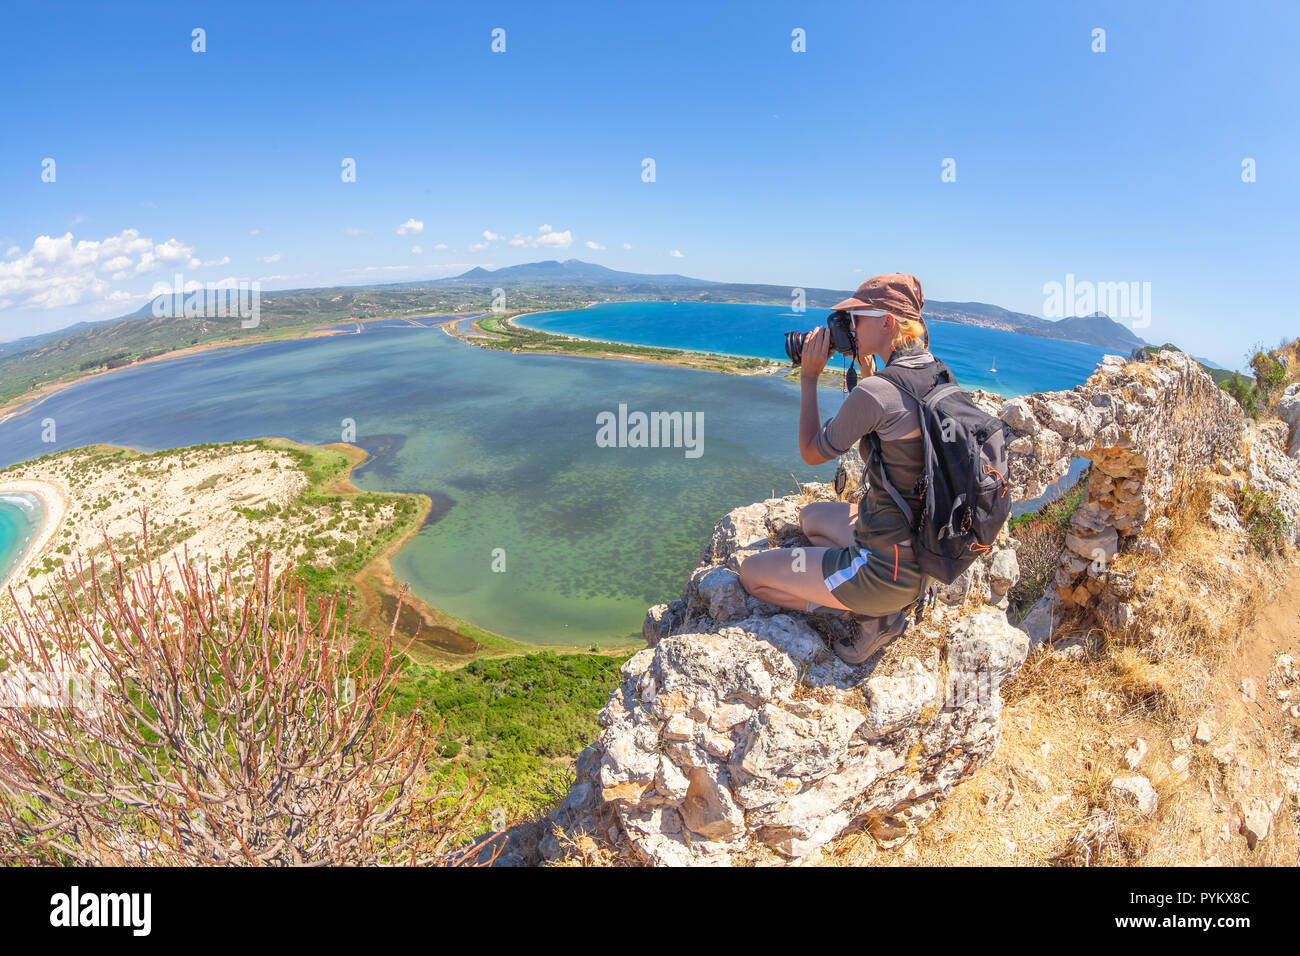 Travel female takes shots of scenic Voidokilia Beach from Navarino Castle ruin in Pylos, Peloponnese, Greece after hiking.Hiker woman photographing a popular greek landmarks. Fish eye view - Stock Image